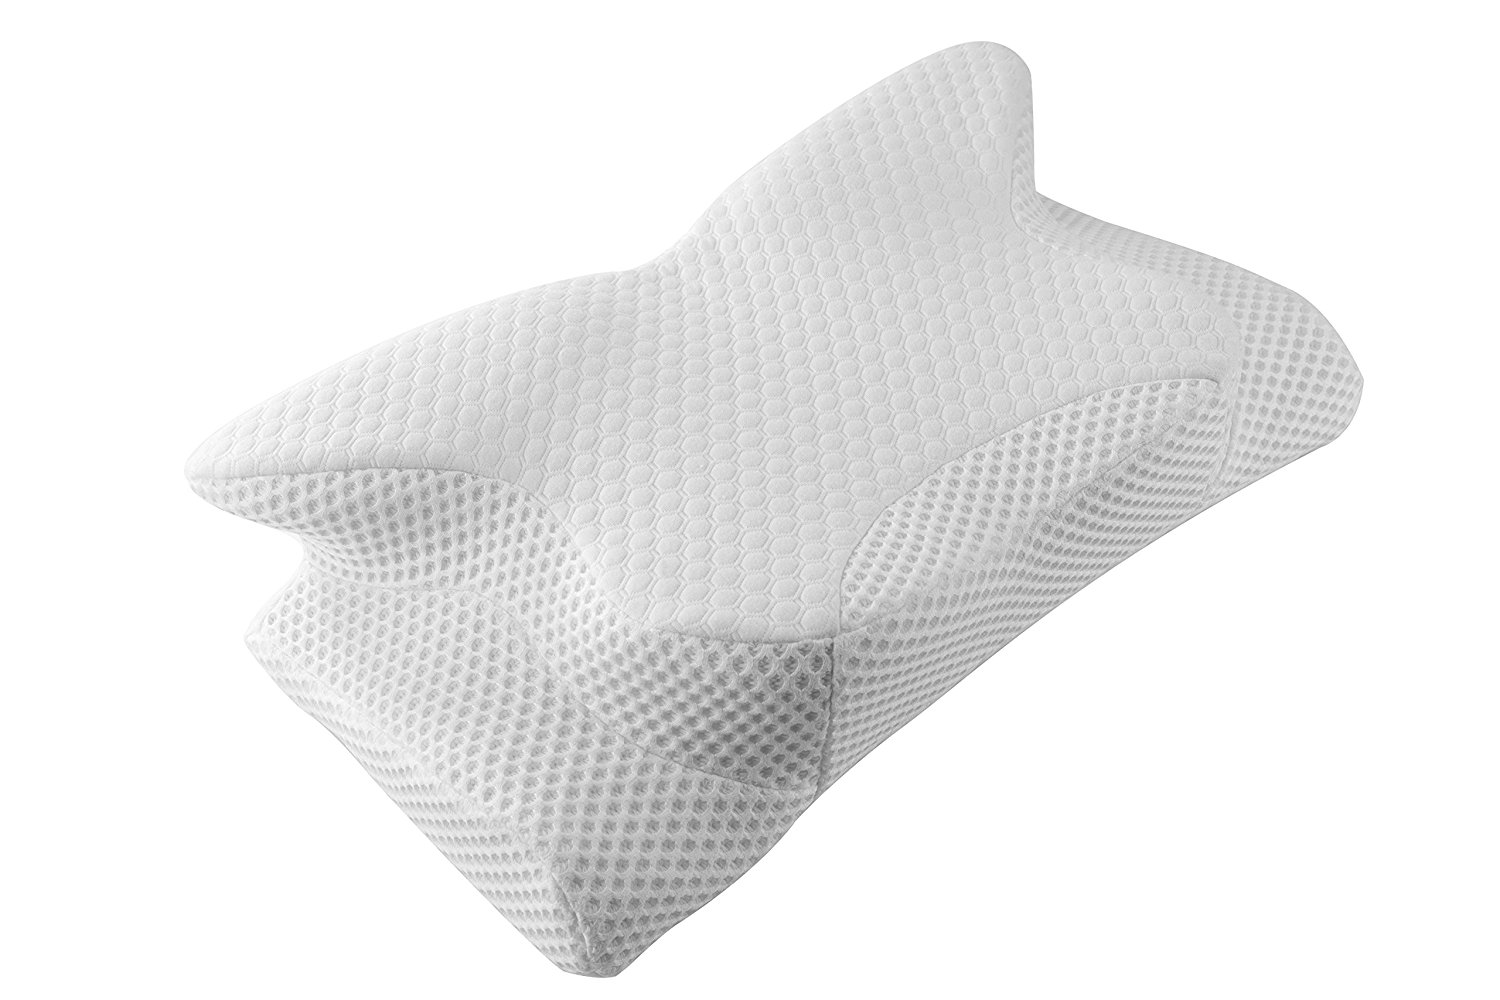 ergonomic cervical contour pillow for neck support and pain relief coisum memory foam sleeping pillow for side and back sleepers hypoallergenic